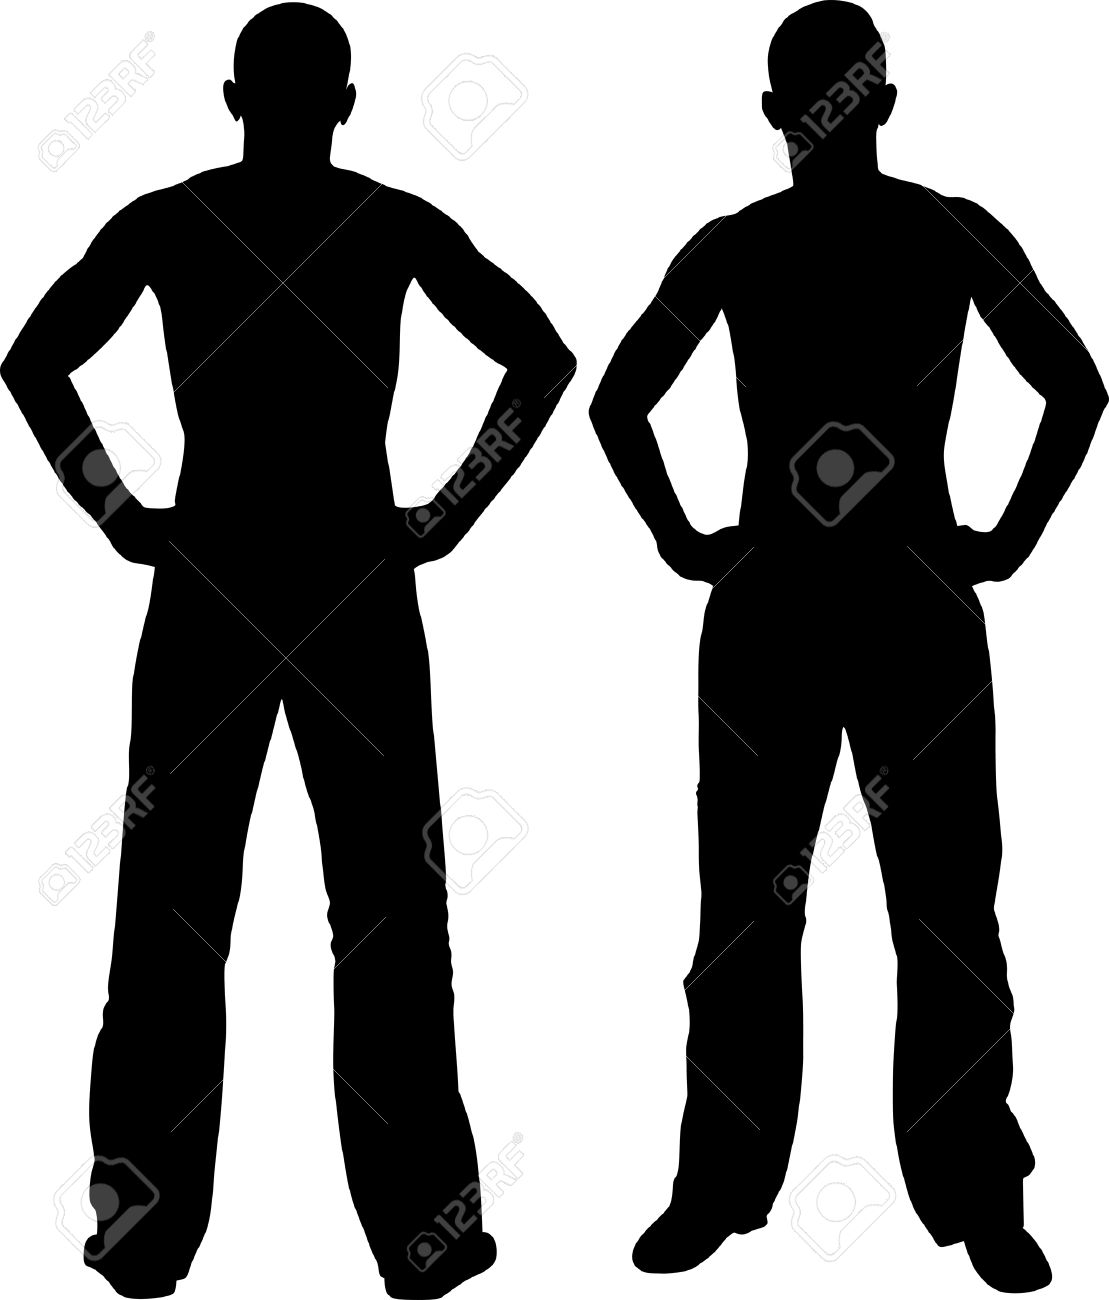 1109x1300 Hands On Hips Silhouette Clipart